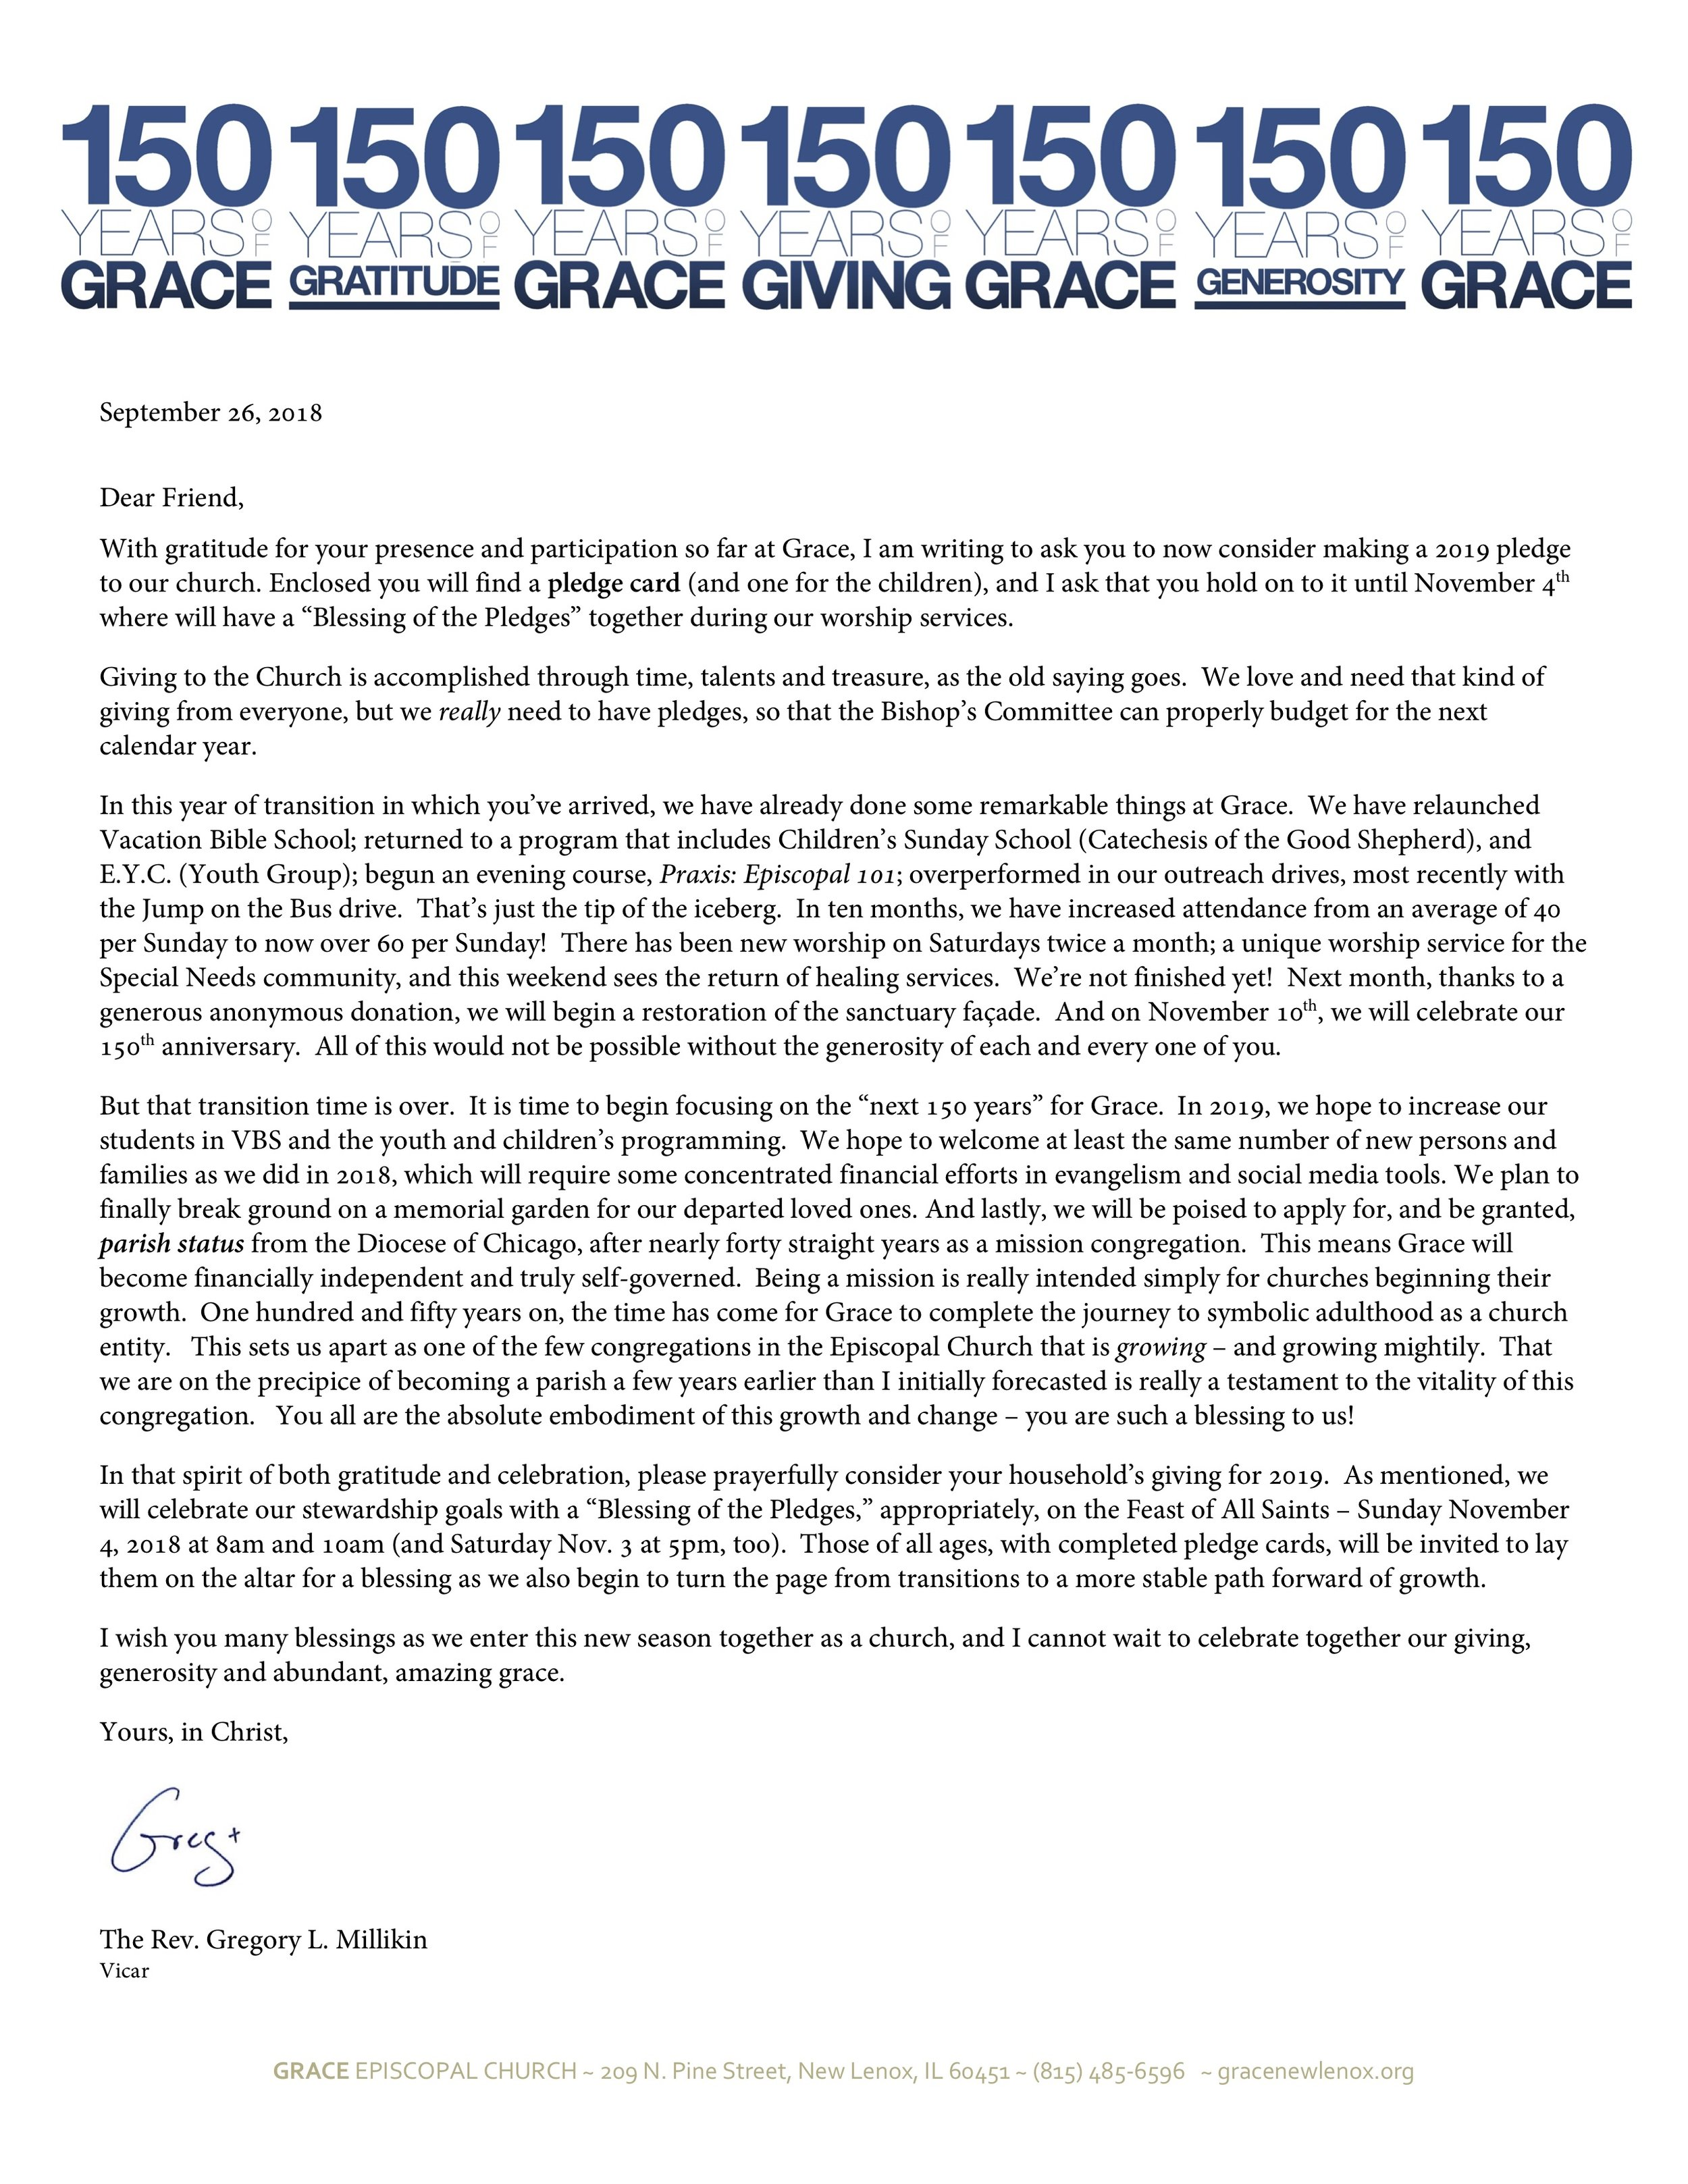 Please consider a yearly pledge, a one-time gift or a donation to Grace New Lenox! - For more information, please CONTACT US